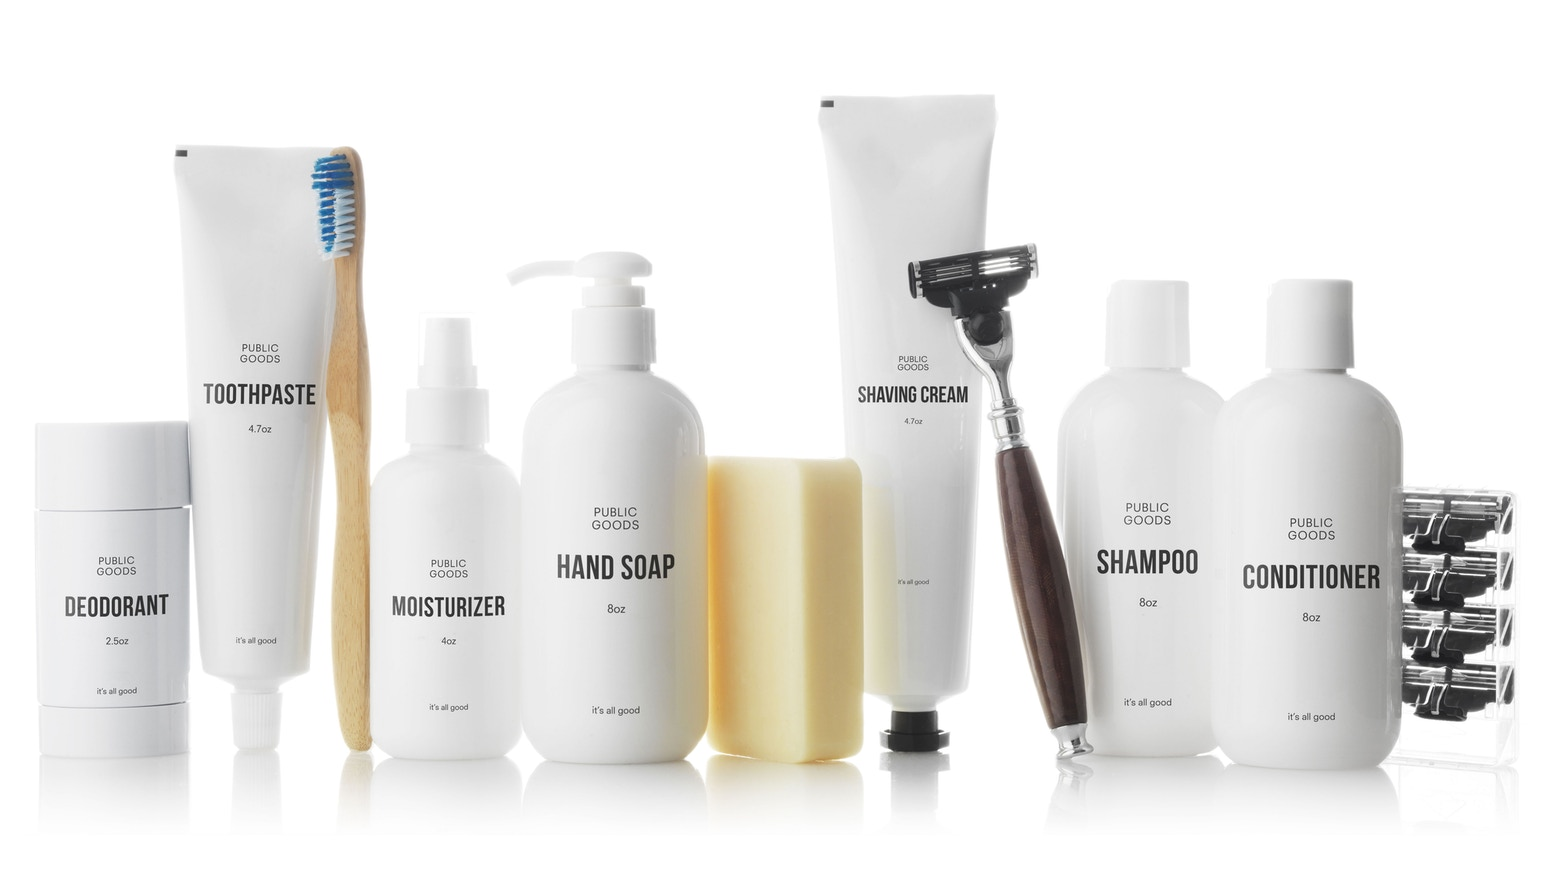 Revolutionizing Household Products By